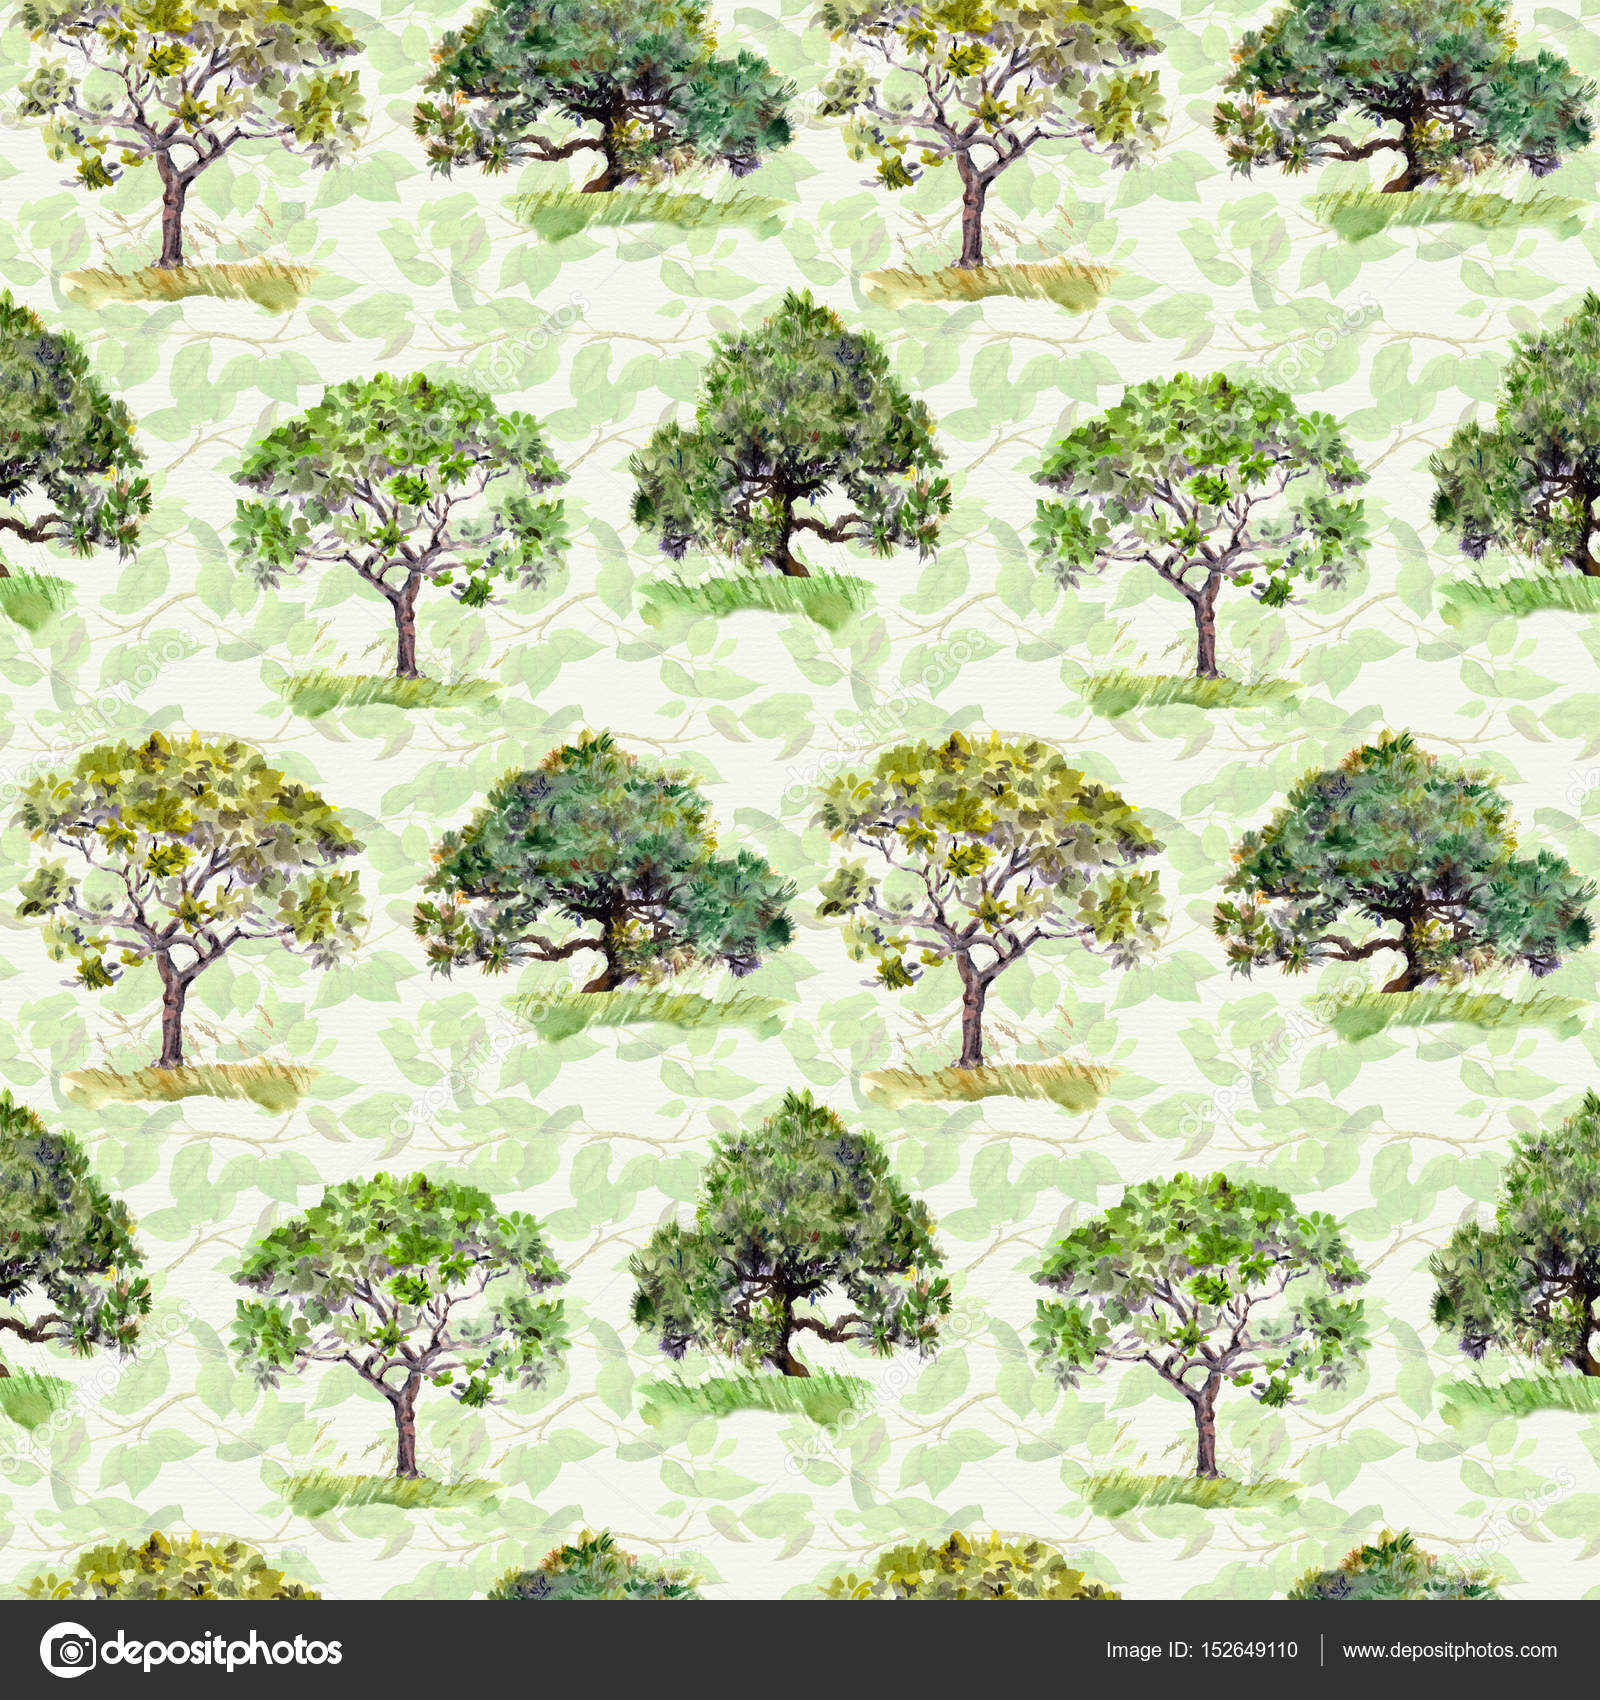 Green trees. Park, forest pattern. Repeating background with leaves ...